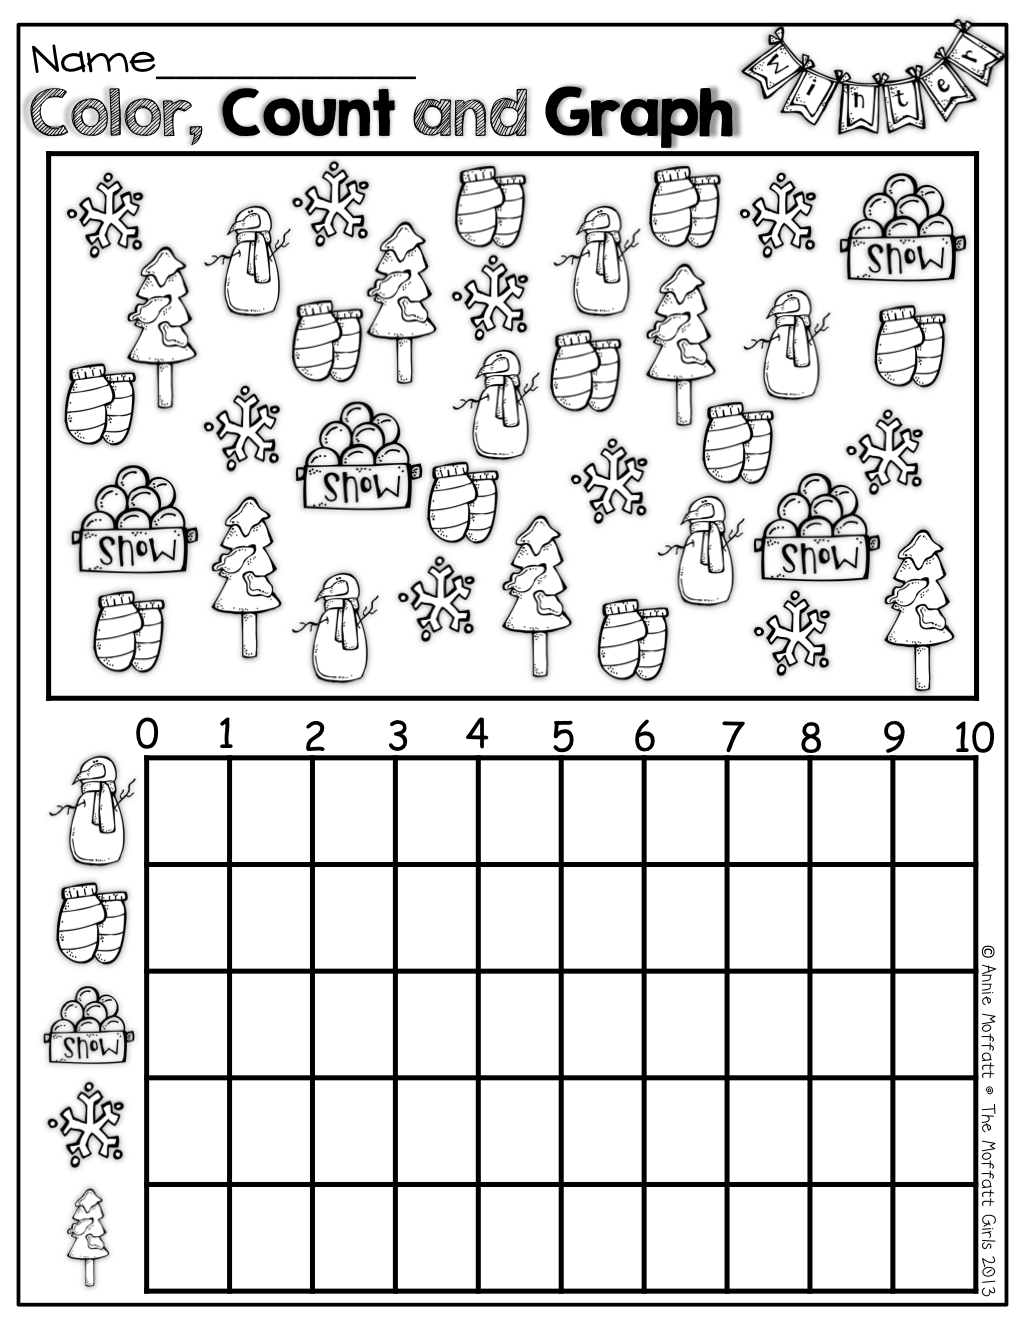 Color, Count And Graph For Winter   Math   Kindergarten Math